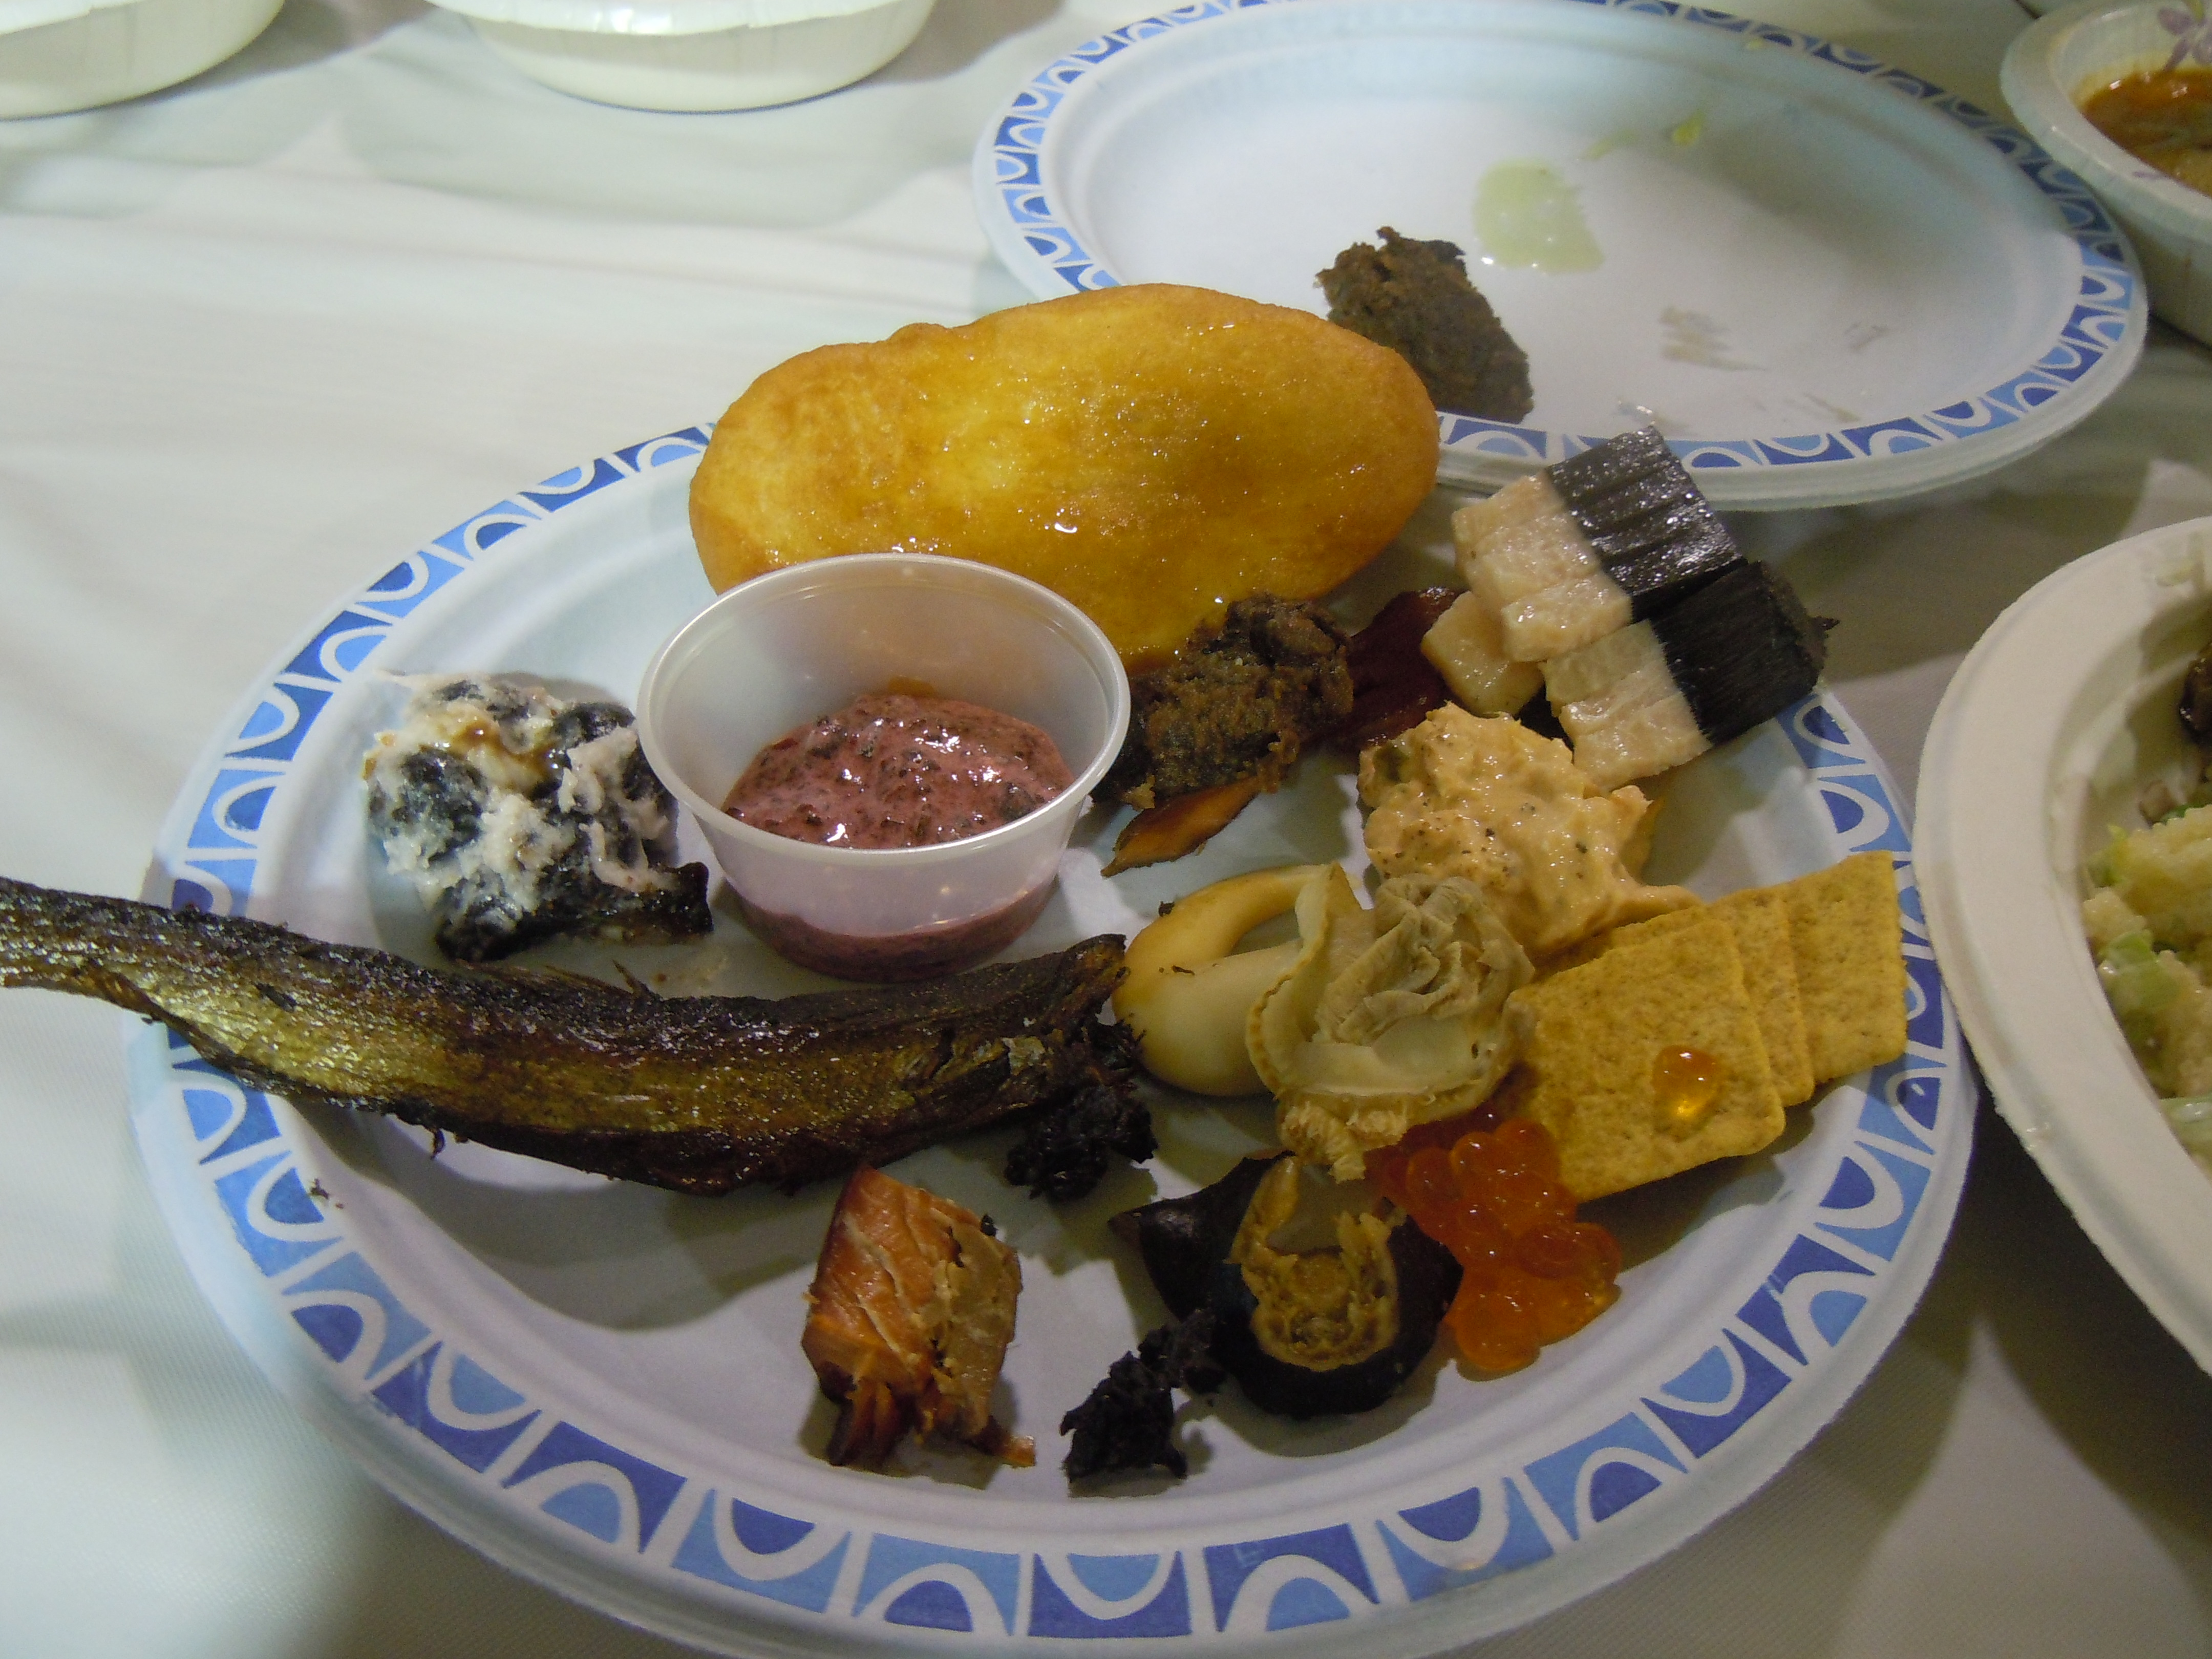 Tlingit culture hooked for Alaskan cuisine traditional